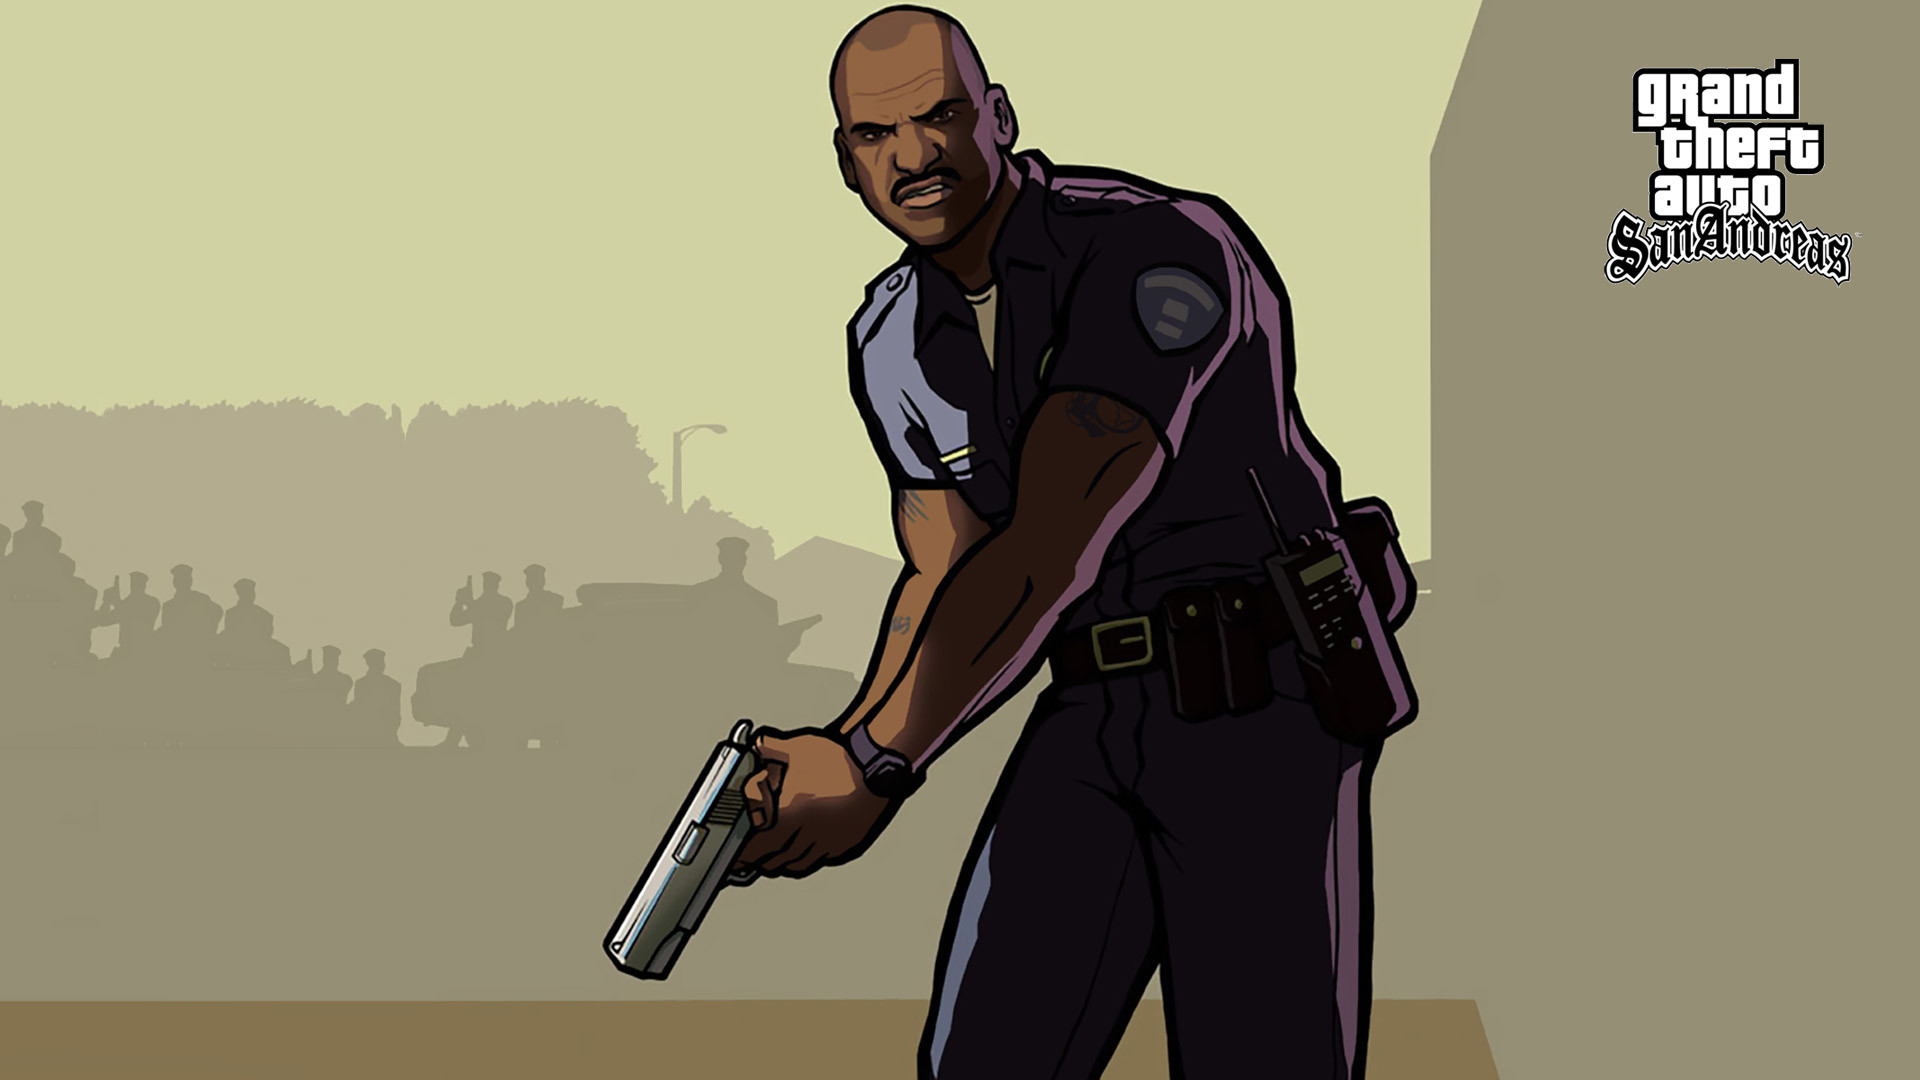 Gta San Andreas Pic Posted By Christopher Walker